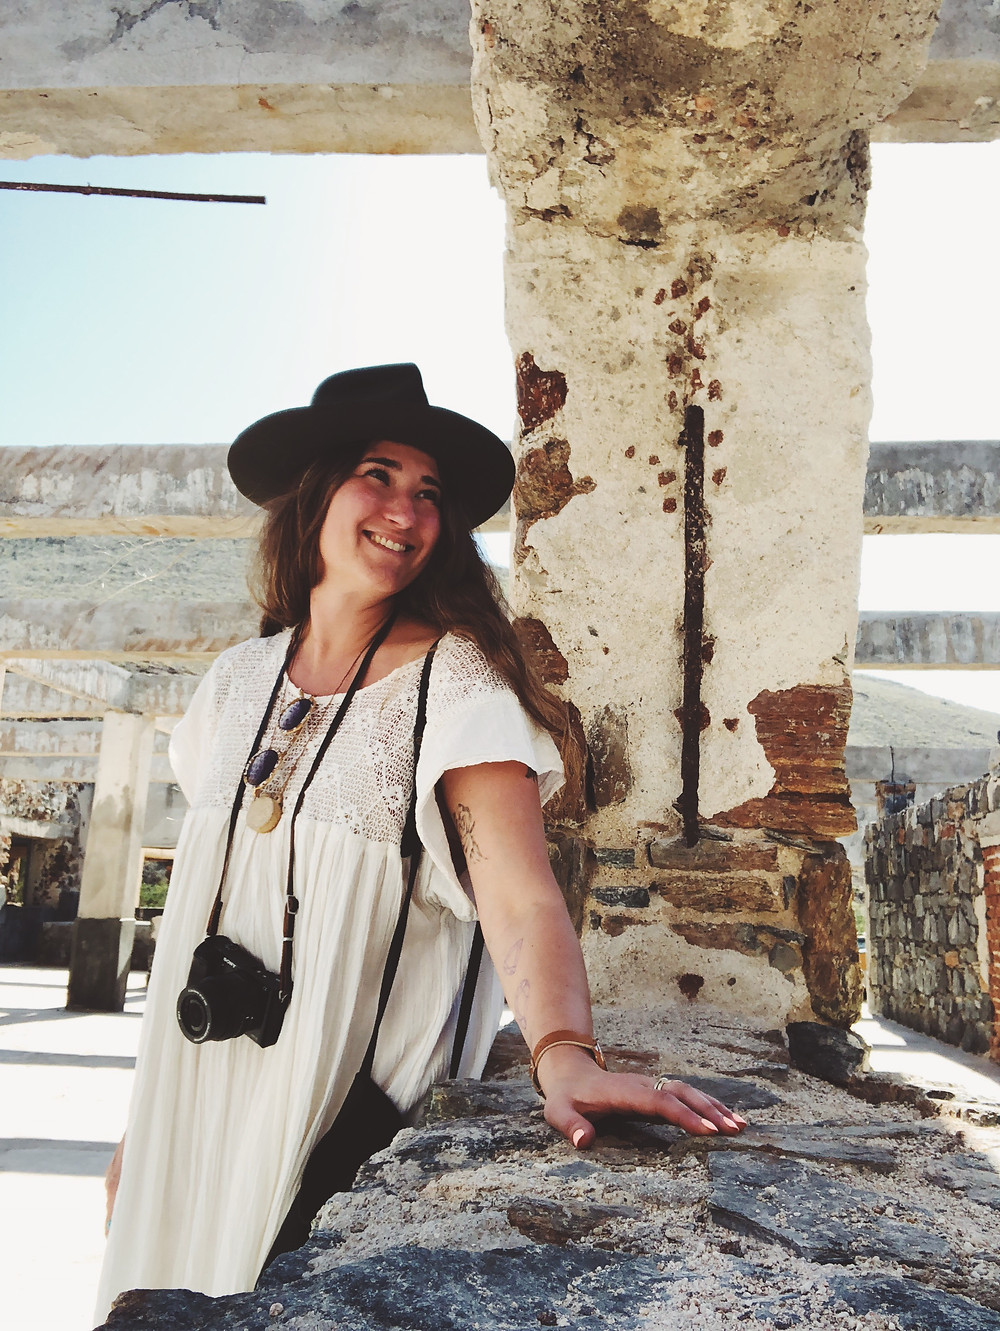 Exploring the ruins near the hotel - Best Places to Stay in Todos Santos - Emily Katz Travels Todo Santos Mexico -